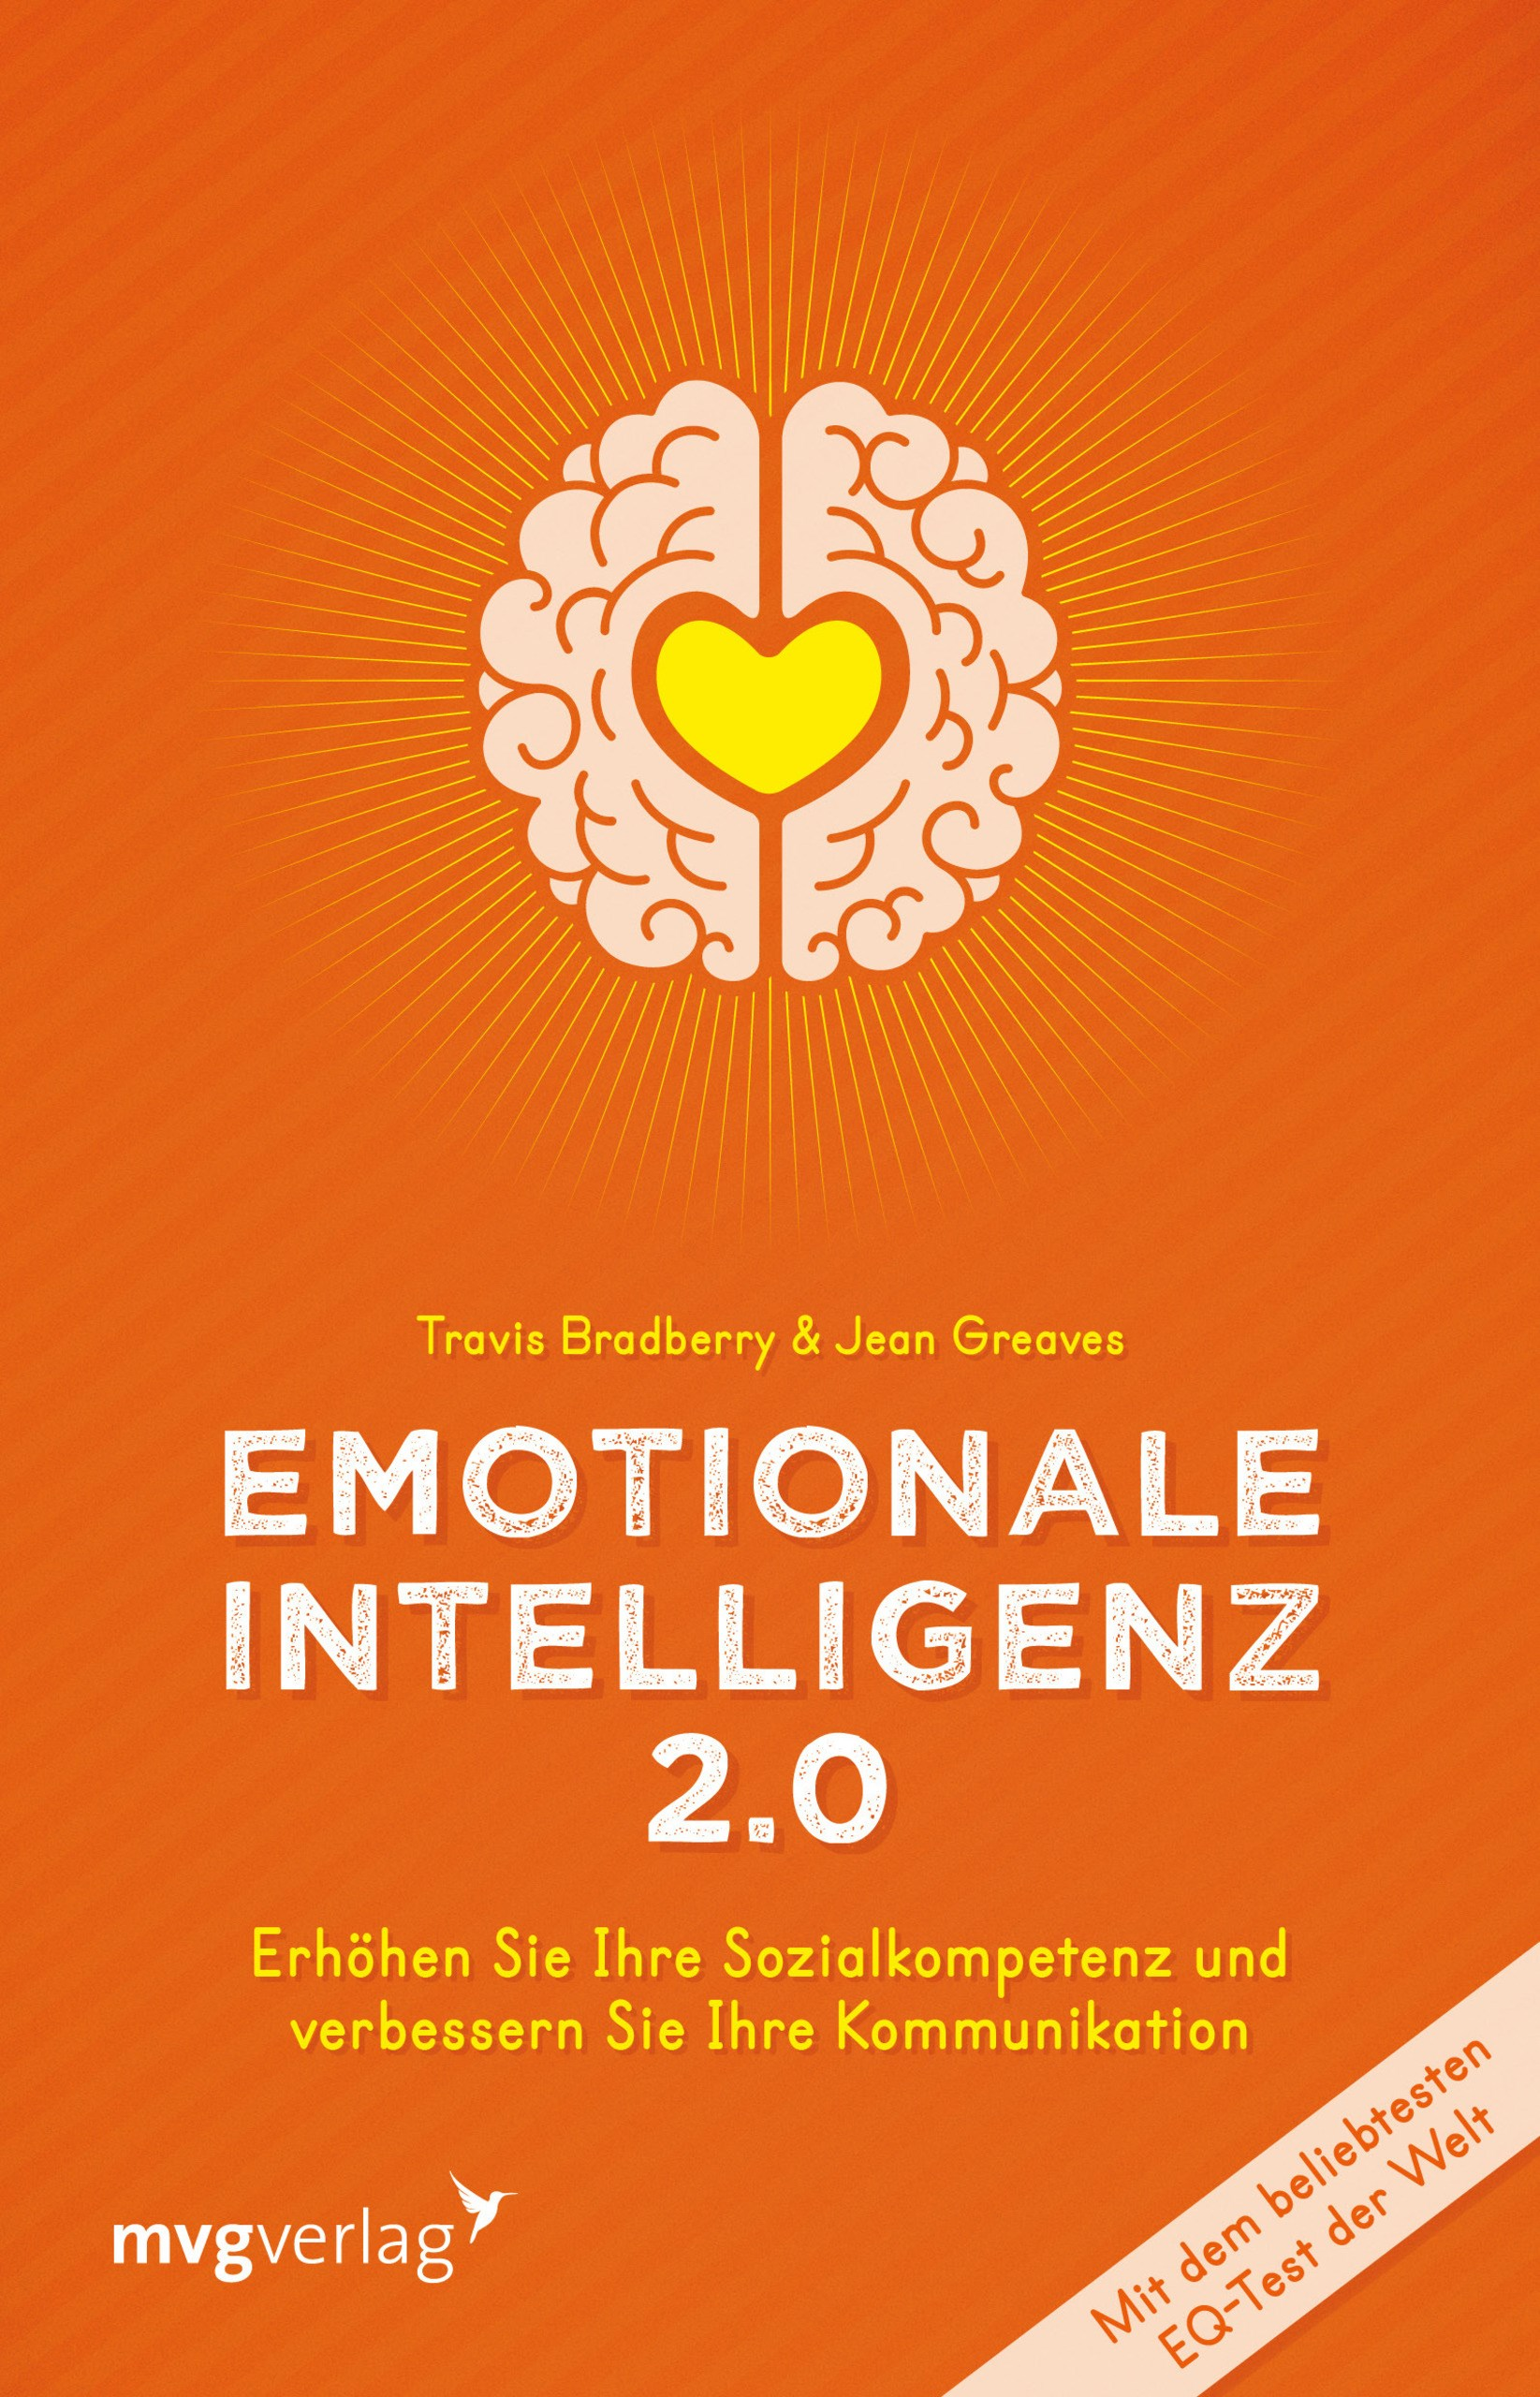 Emotionale Intelligenz 2.0 | Bradberry / Greaves, 2016 | Buch (Cover)